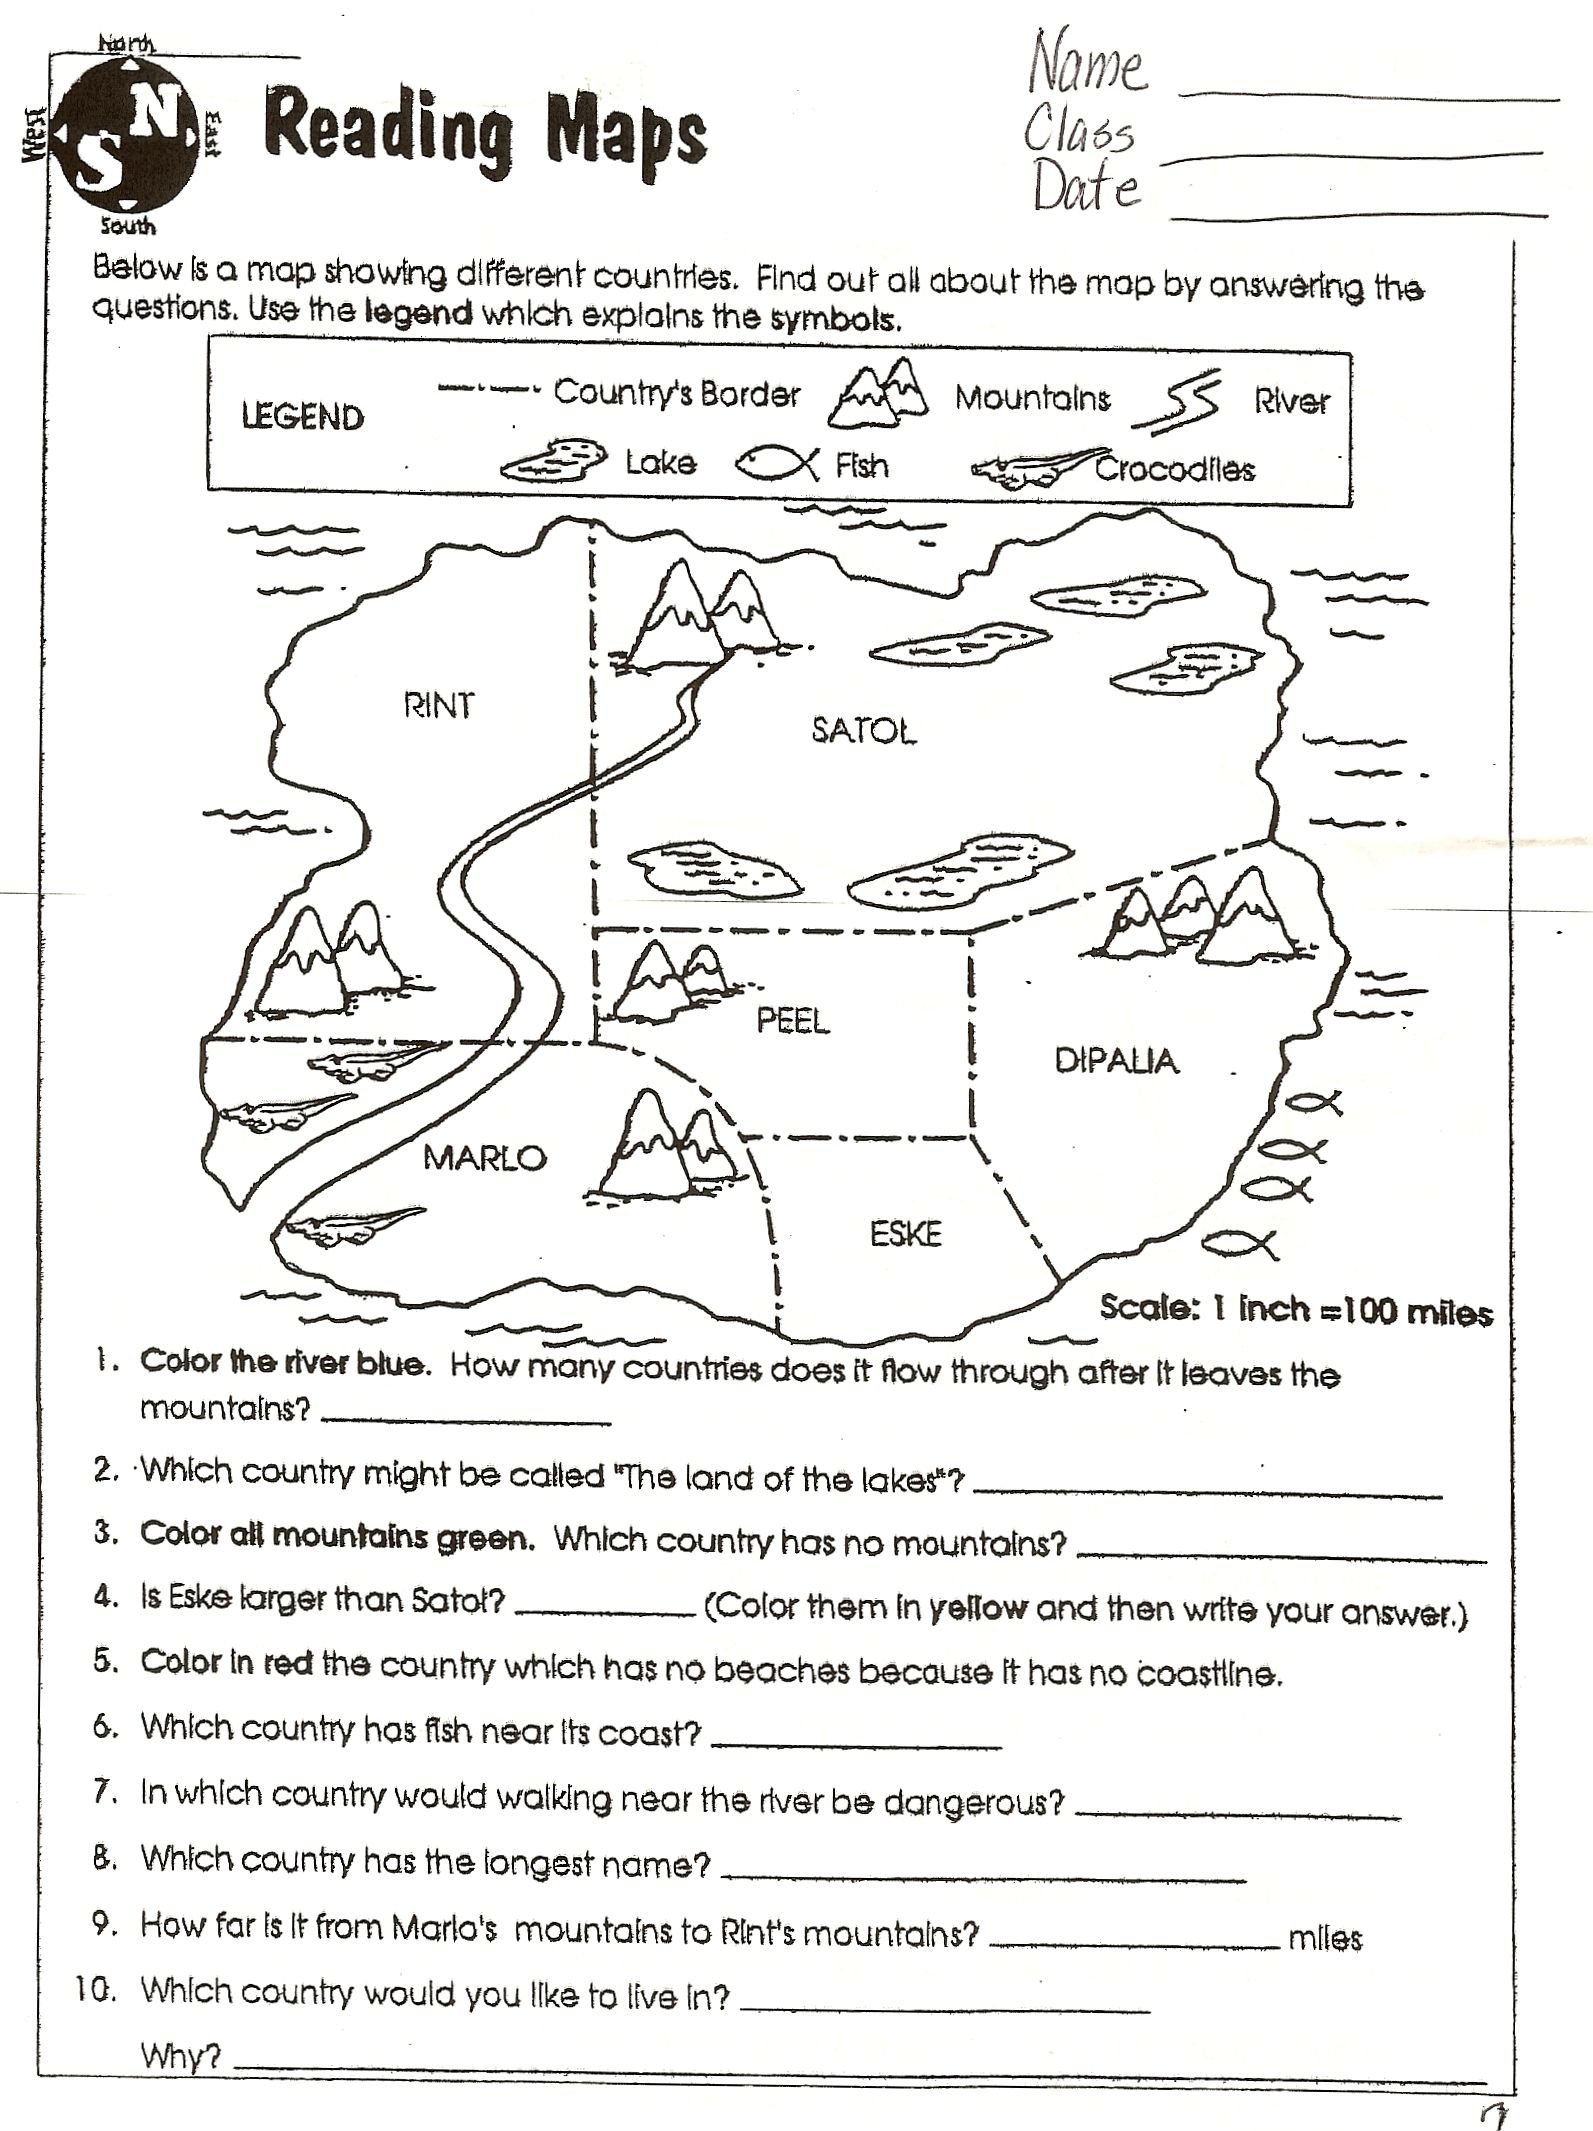 Activity World History 9th Grade Worksheet